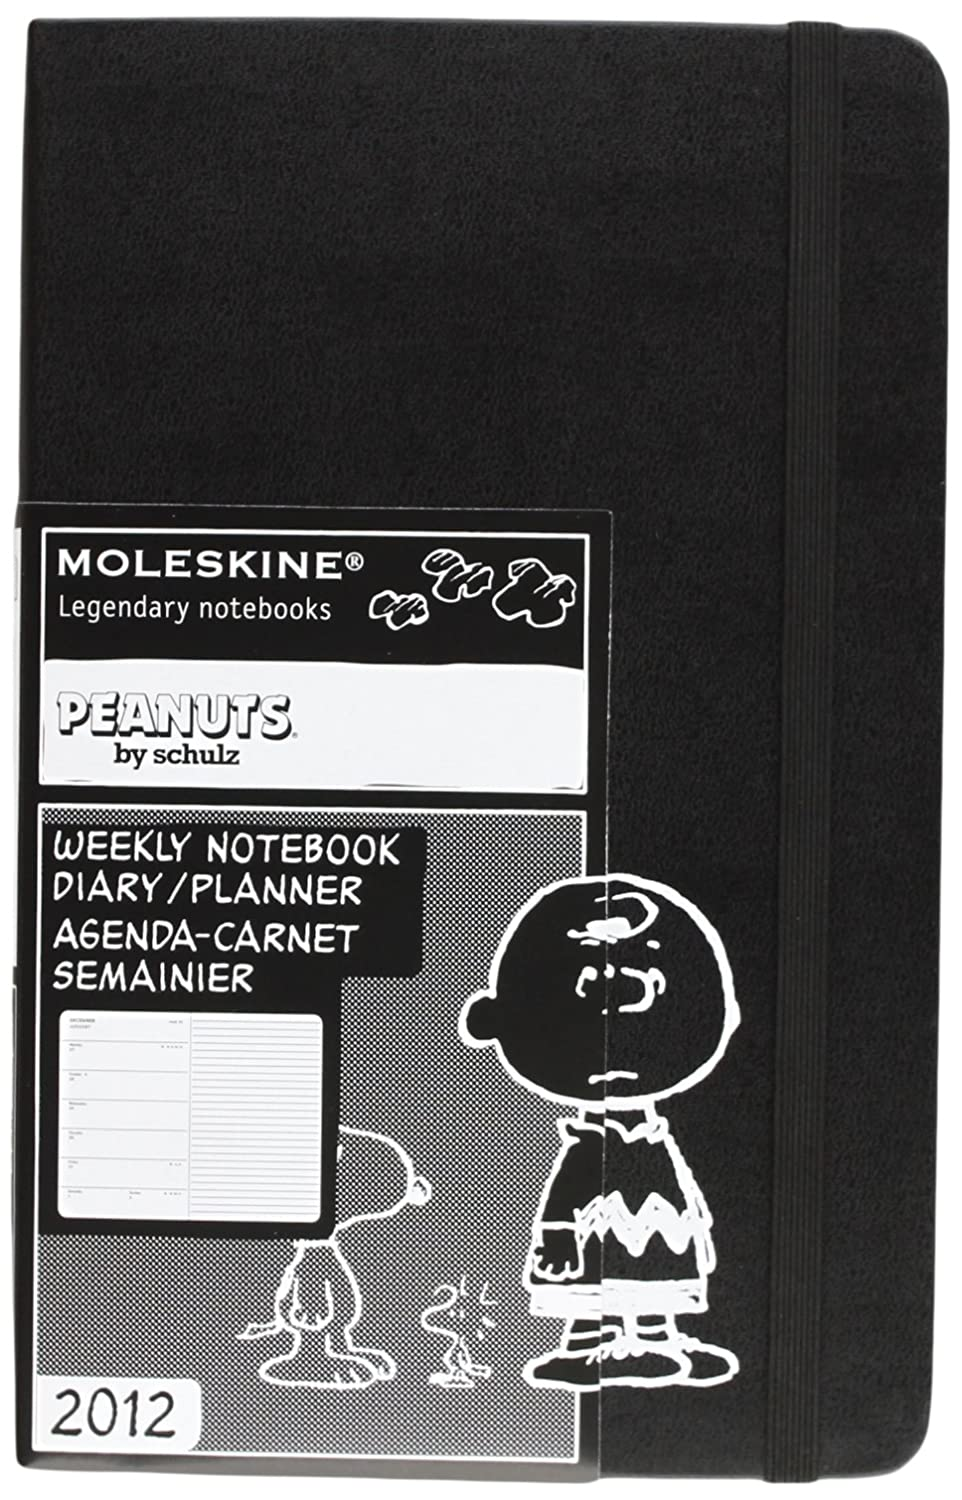 Moleskine 2012 12 Month Weekly Notebook Planner Peanuts Limited Edition Large